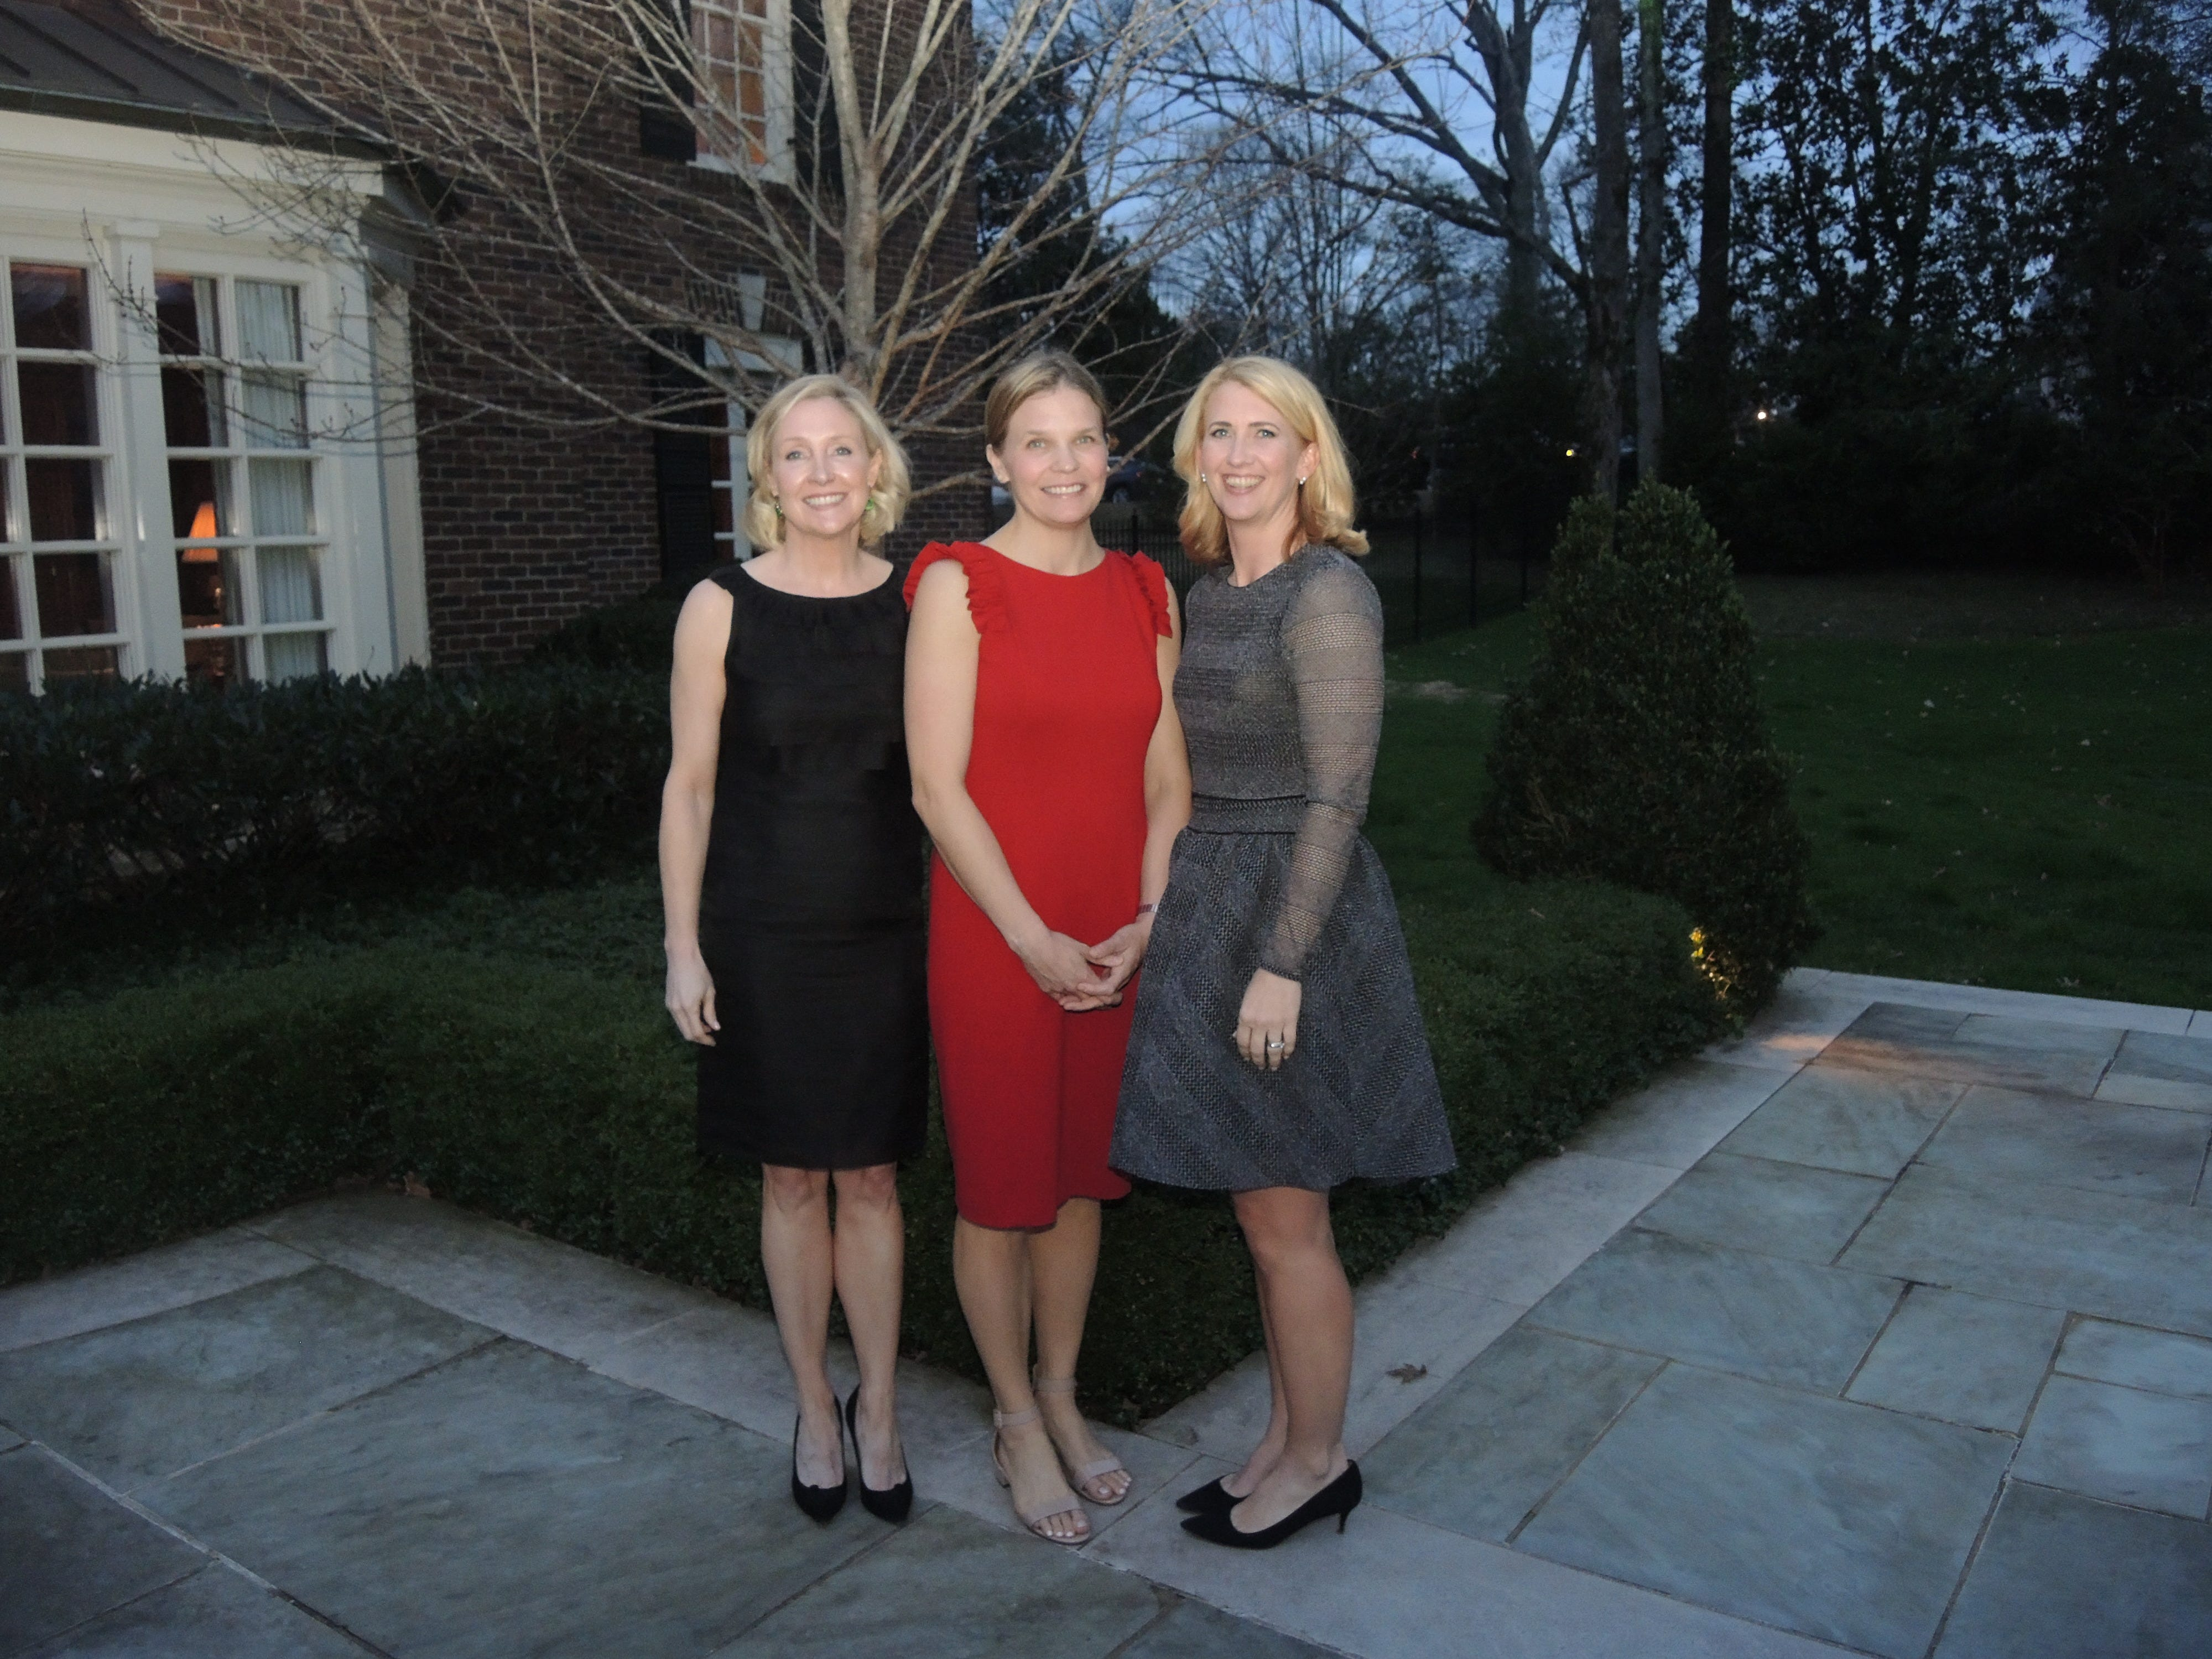 Swan Ball 2019 Auction Chairs Lise Morrow, left, Laura Bowen and Susan Weathersby at the Swan Ball 2019 Unveiling, held at the home of Kathy and Bobby Rolfe.